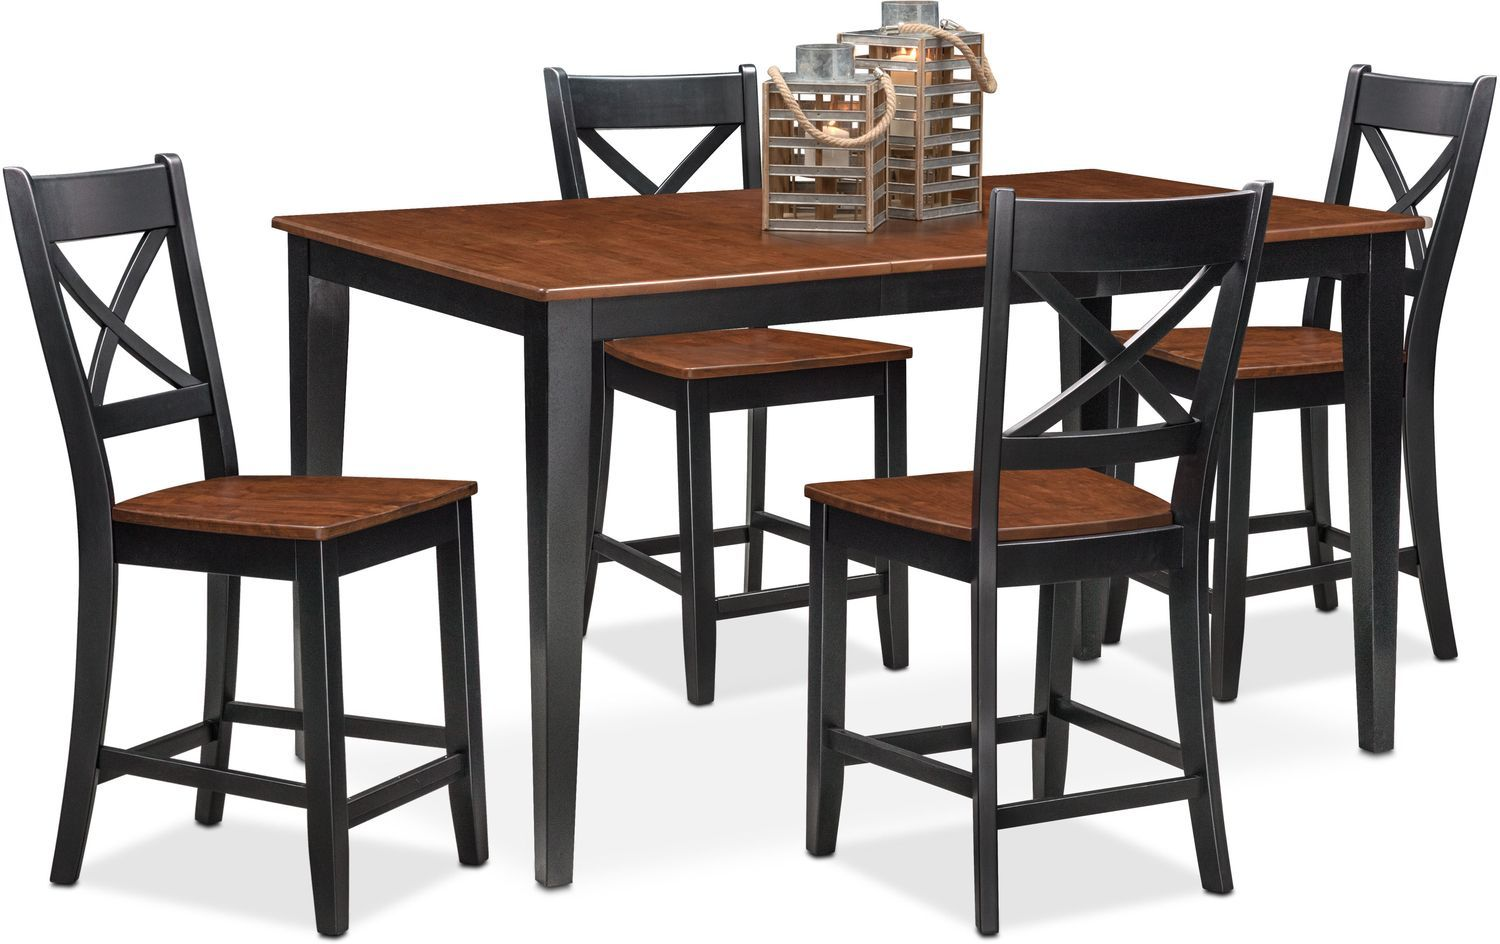 Nantucket Counter Height Dining Table And 4 Dining Chairs Tall